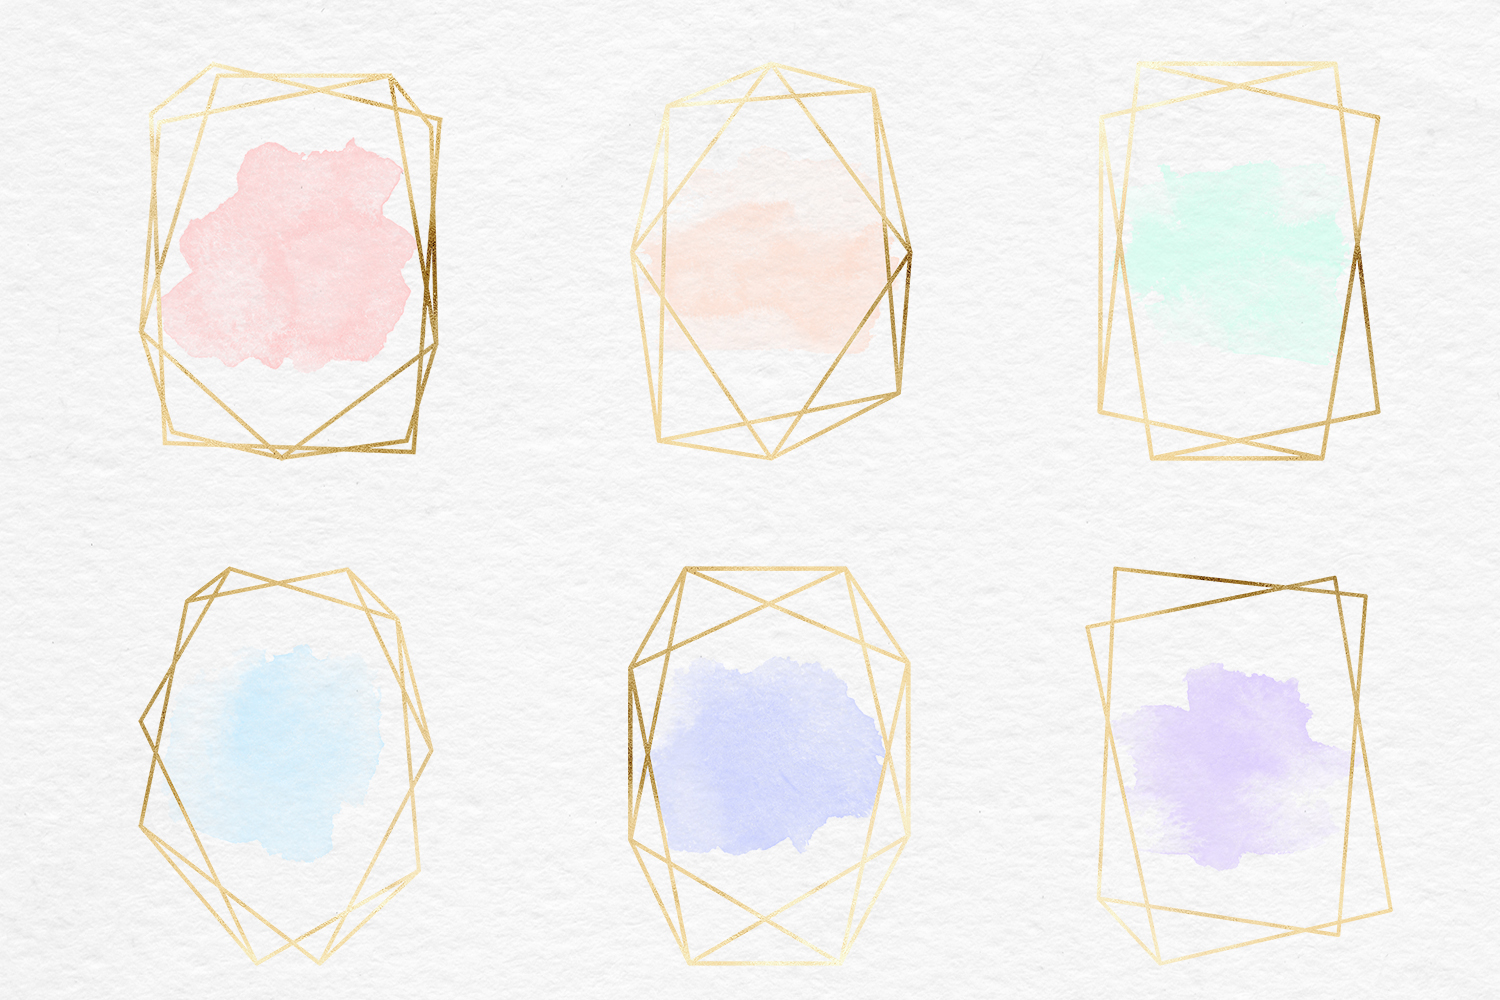 Gold And Watercolor Frames example image 2